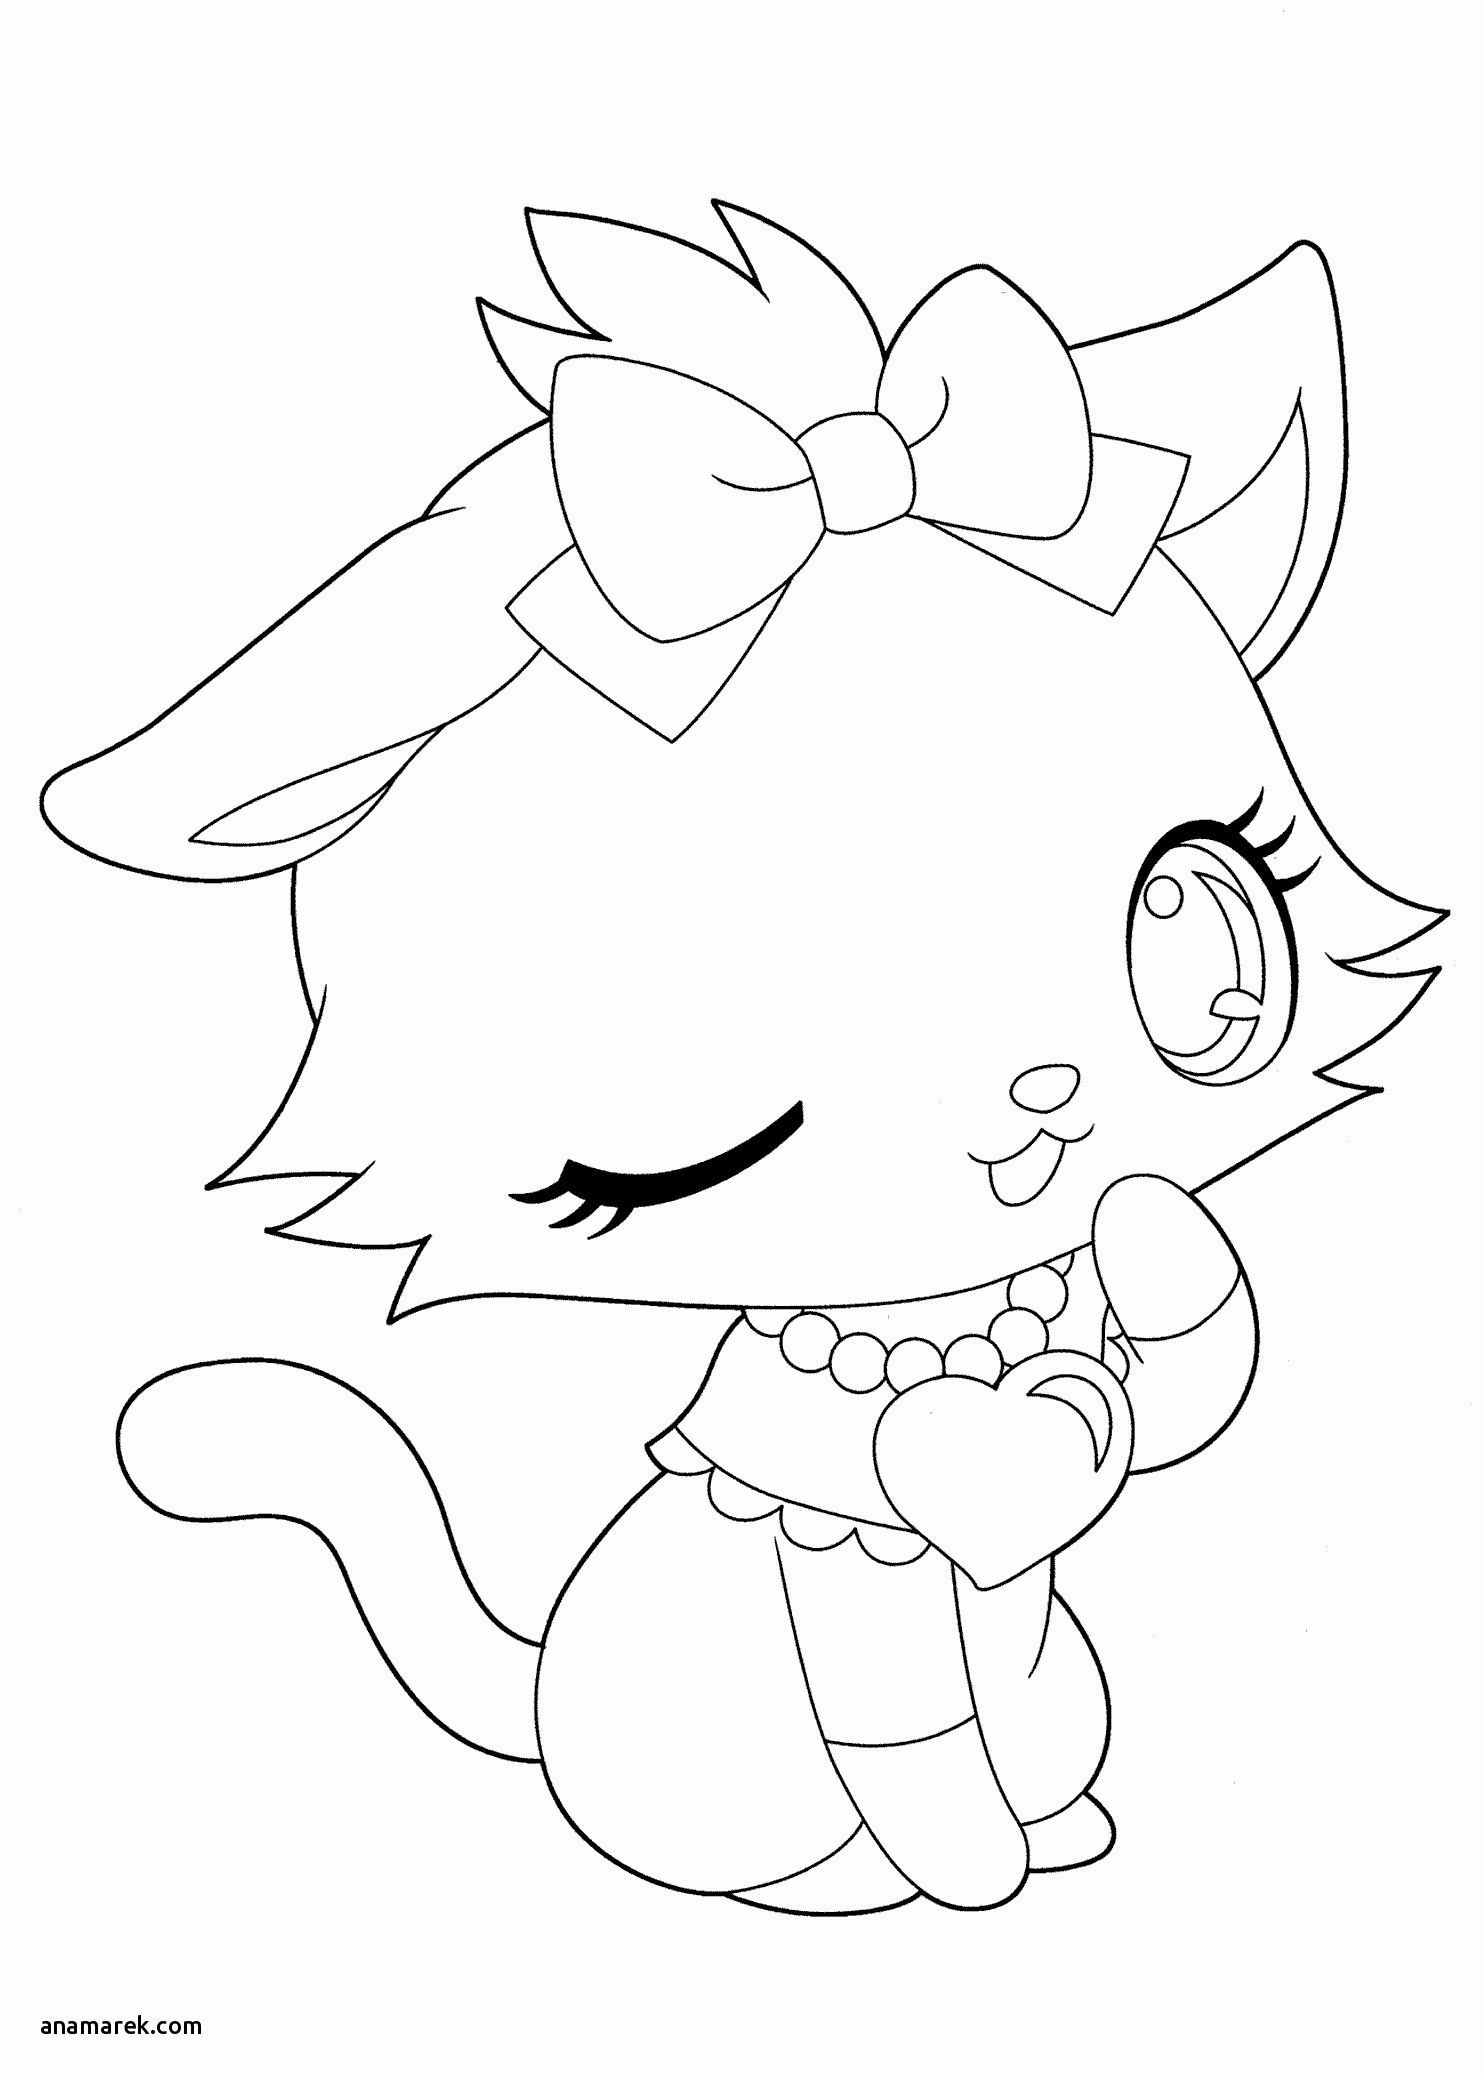 Anime Dog Coloring Pages Hello Kitty Colouring Pages Unicorn Coloring Pages Mermaid Coloring Pages